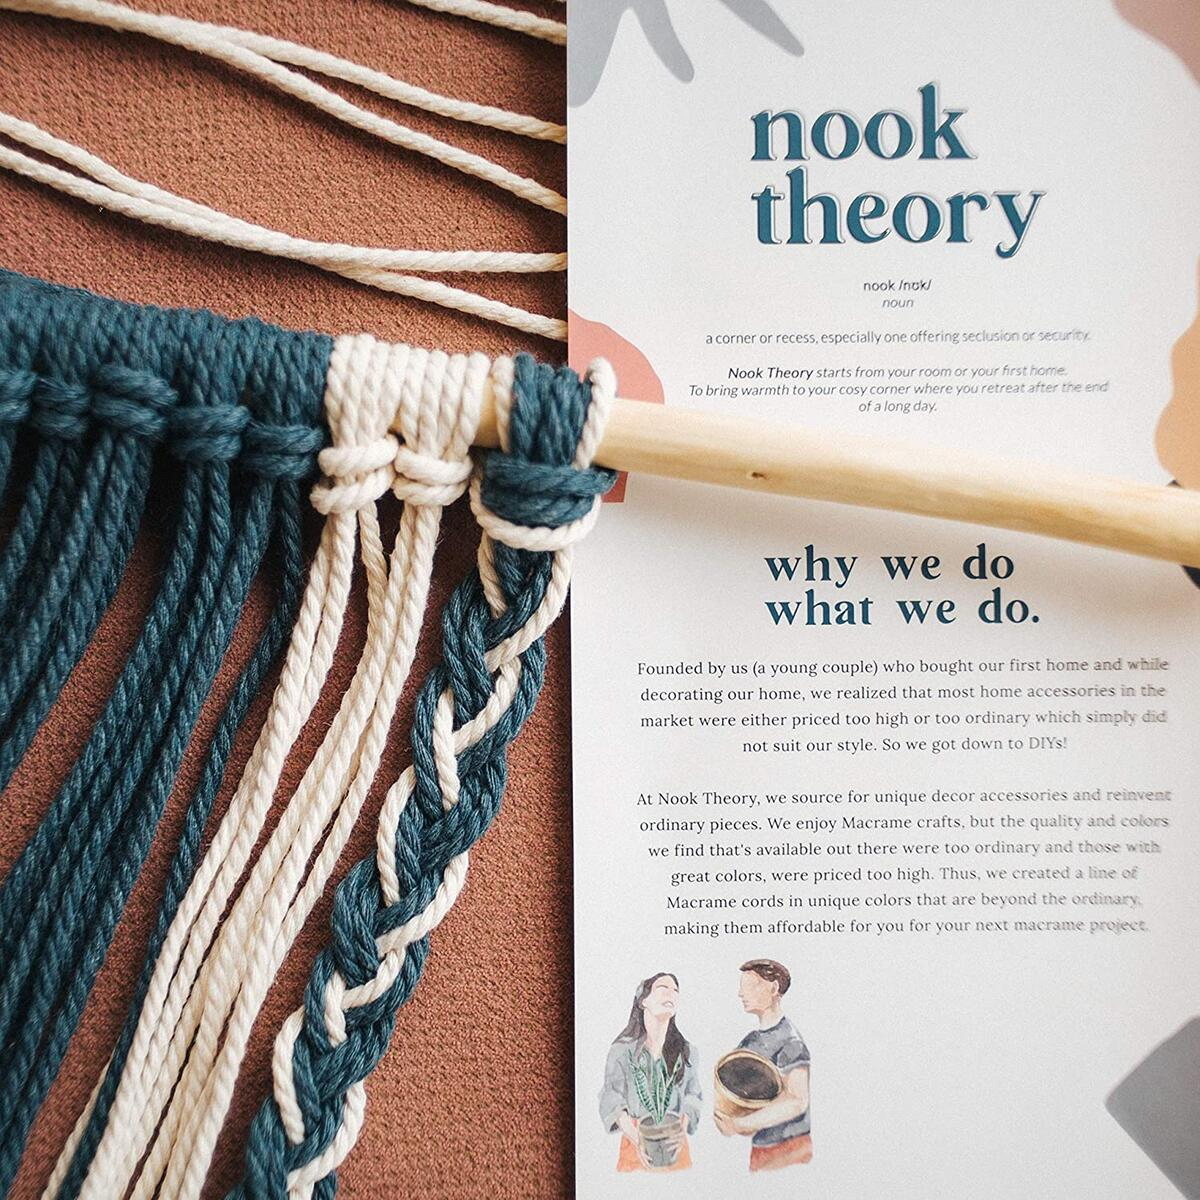 Nook Theory Macrame Cord 3mm - Flexible & Soft Rope Perfect for Knots - Macrame Supplies for DIY Wall Hangers, Plant Holders & Boho Home Decorations - Arts & Crafts Essentials - 220 Yards - Maroon